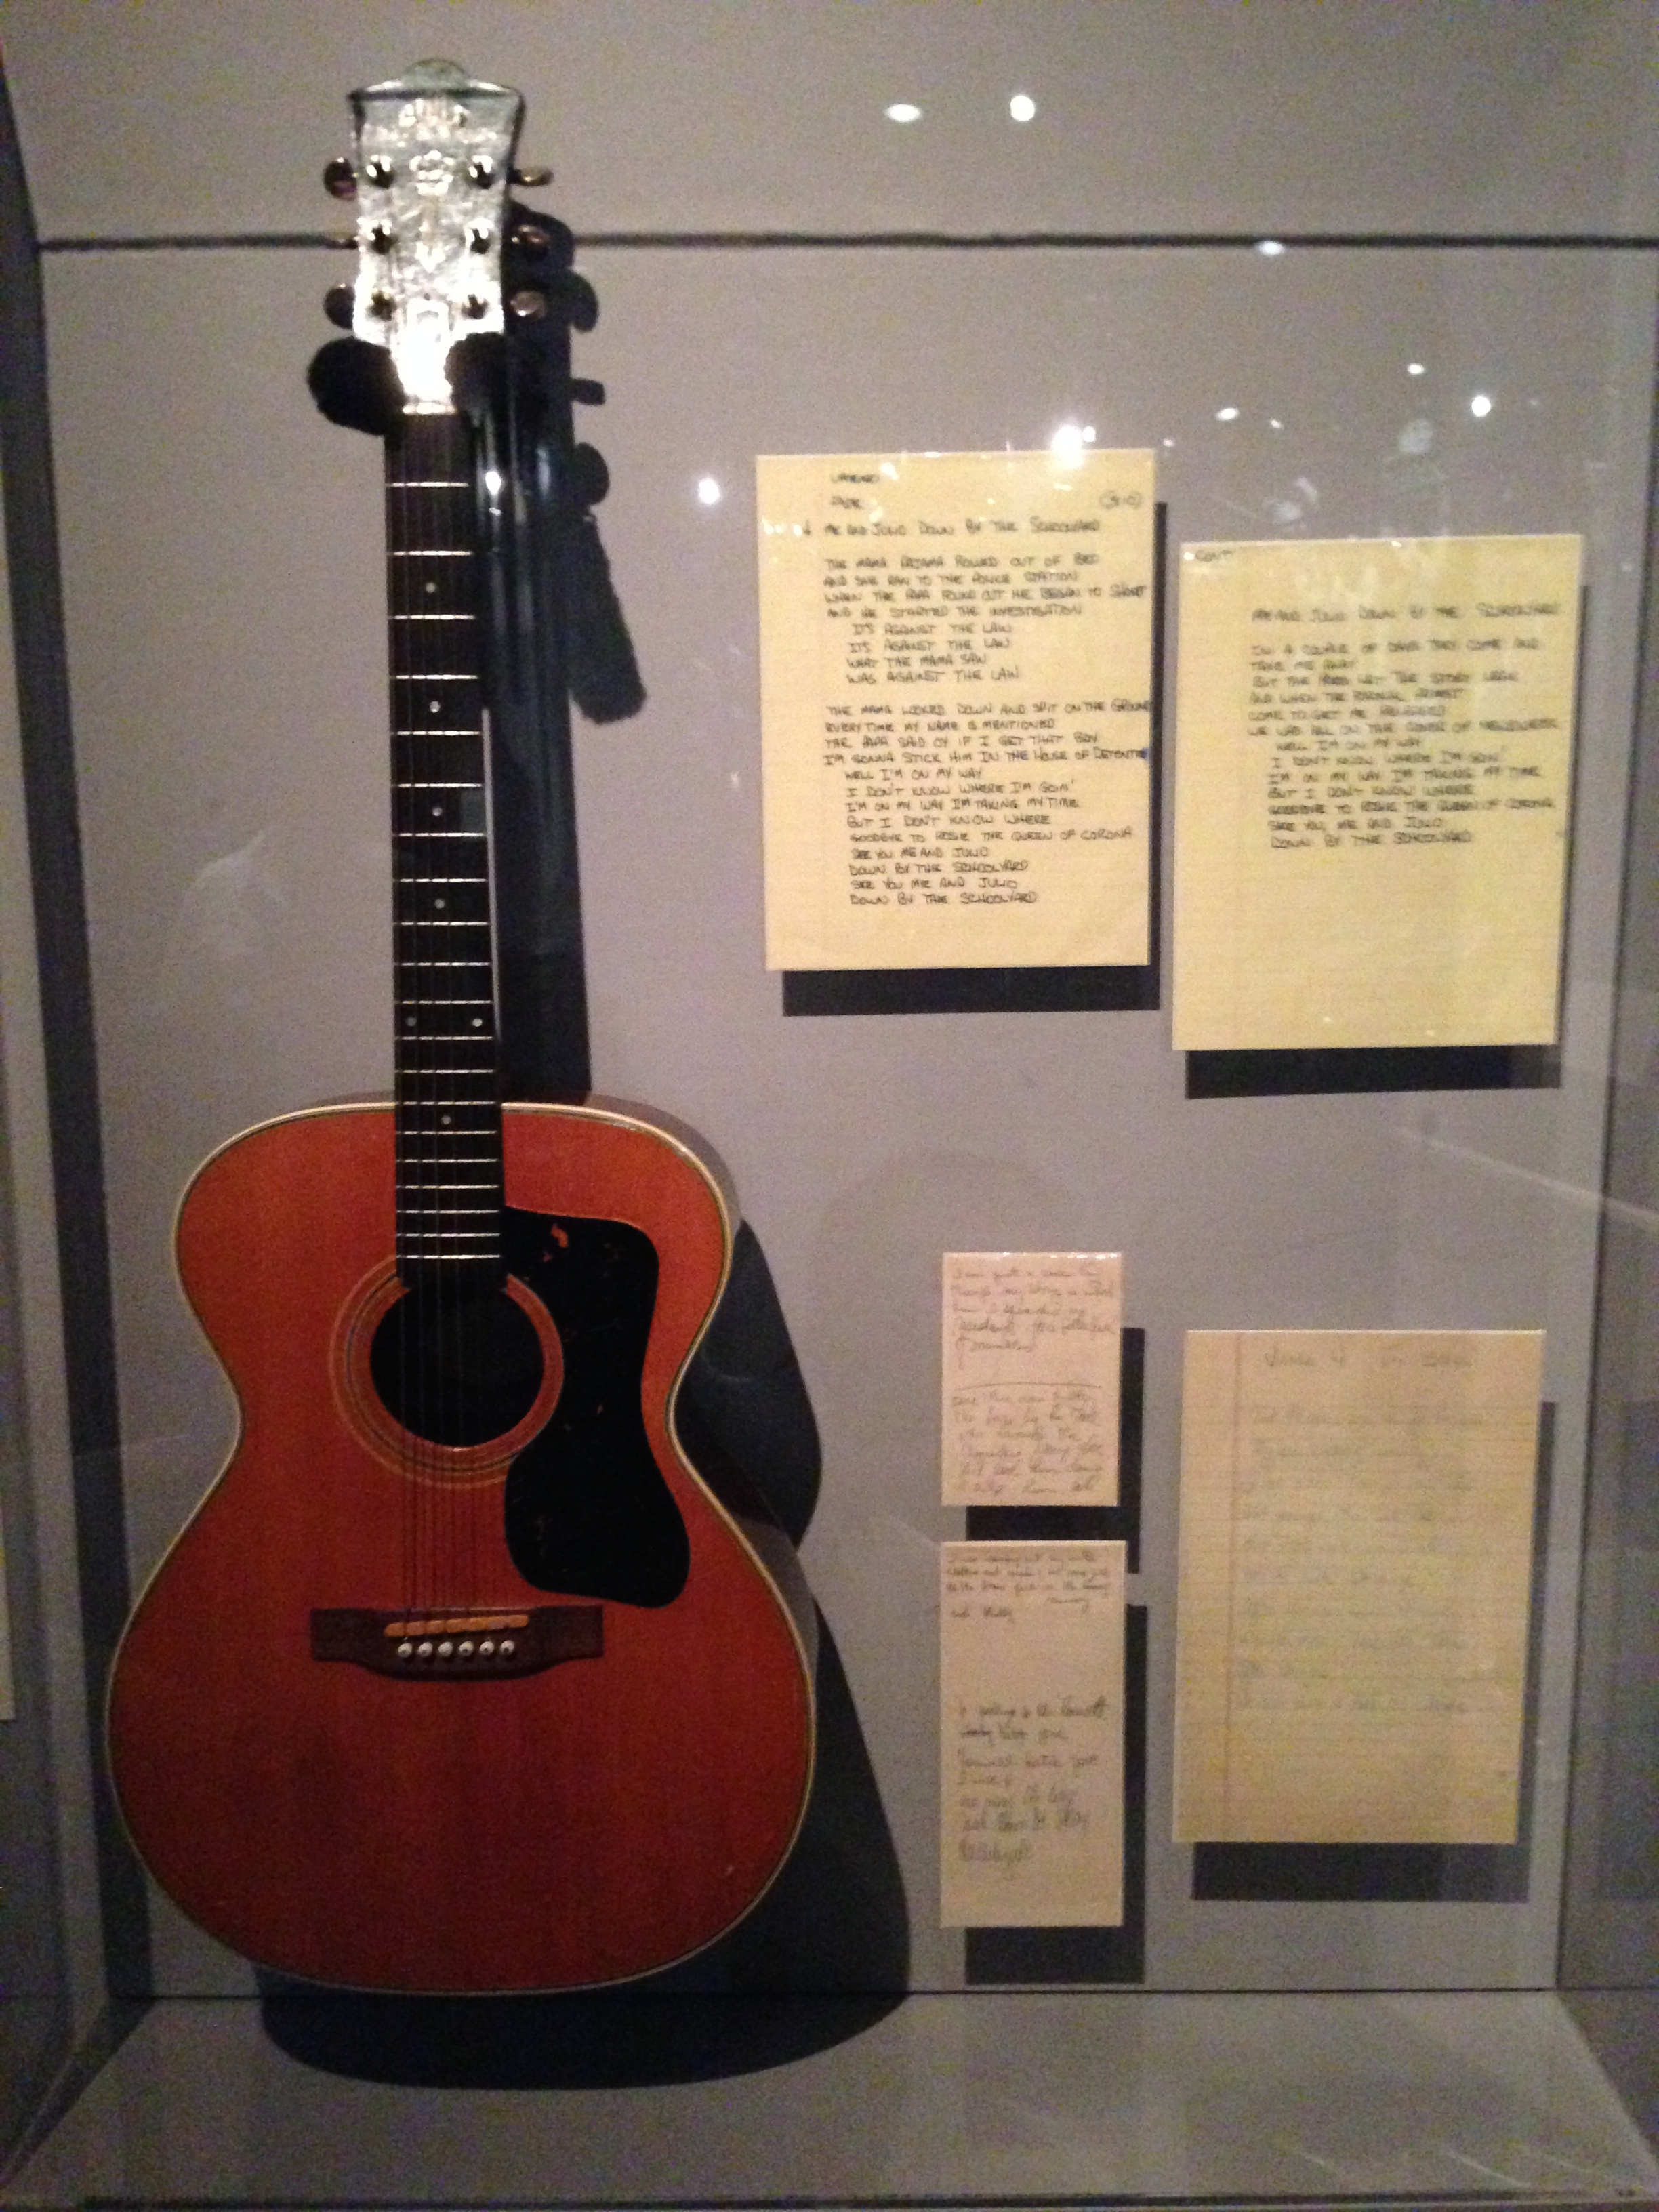 Paul Simon's Guitar and Lyrics